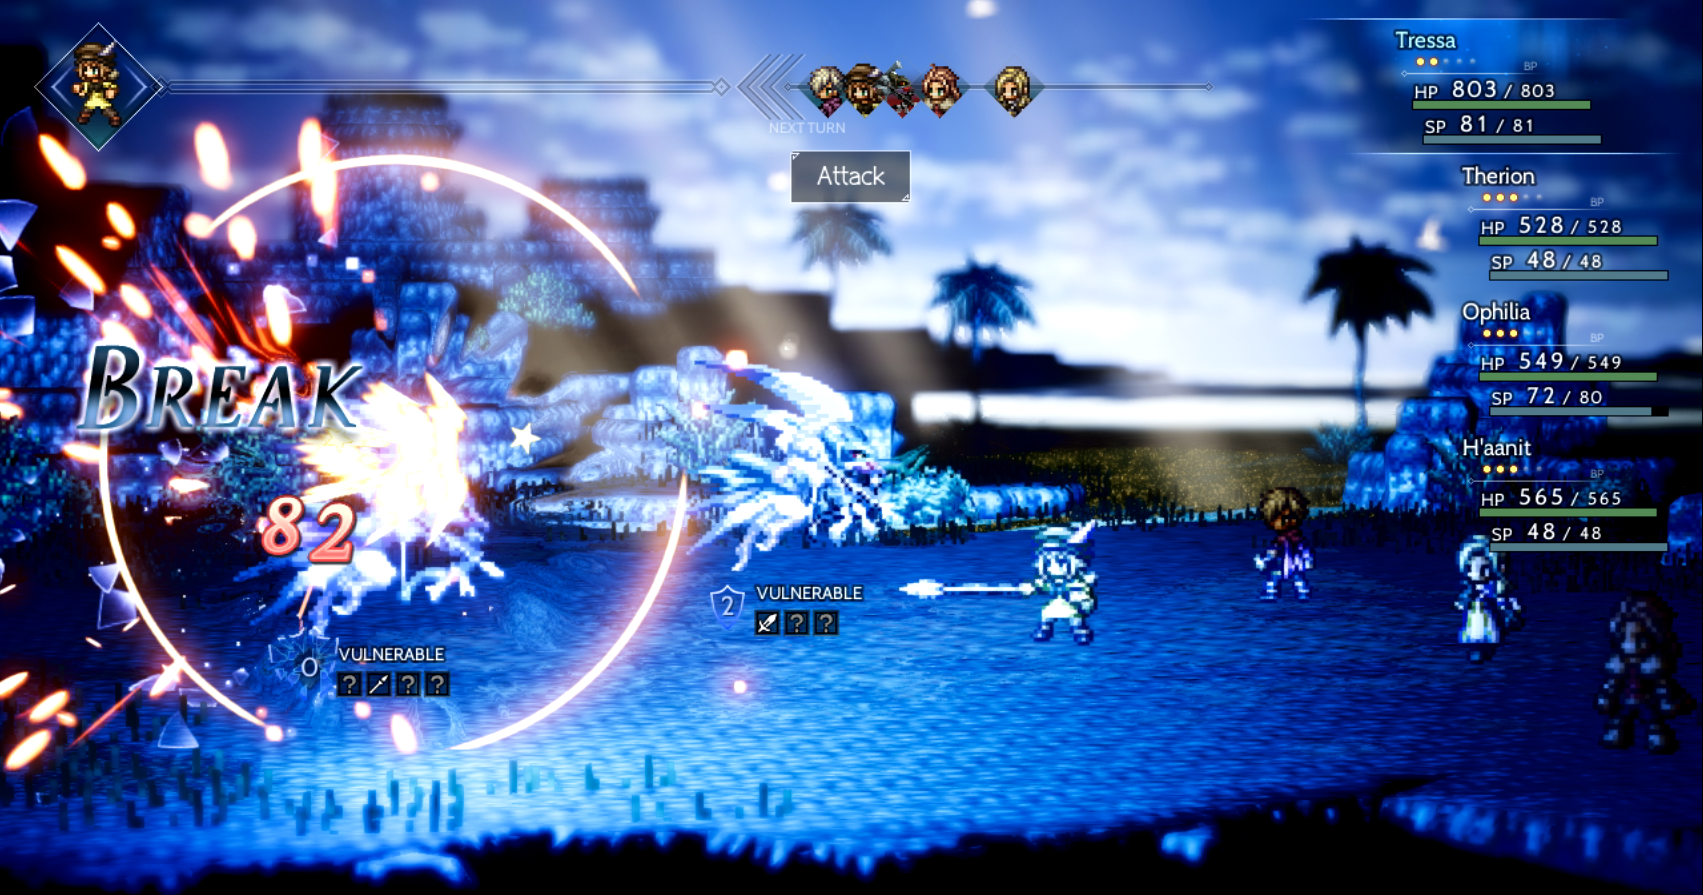 The battle system is a refreshing take on 16-bit style turn-based RPGs' offerings.